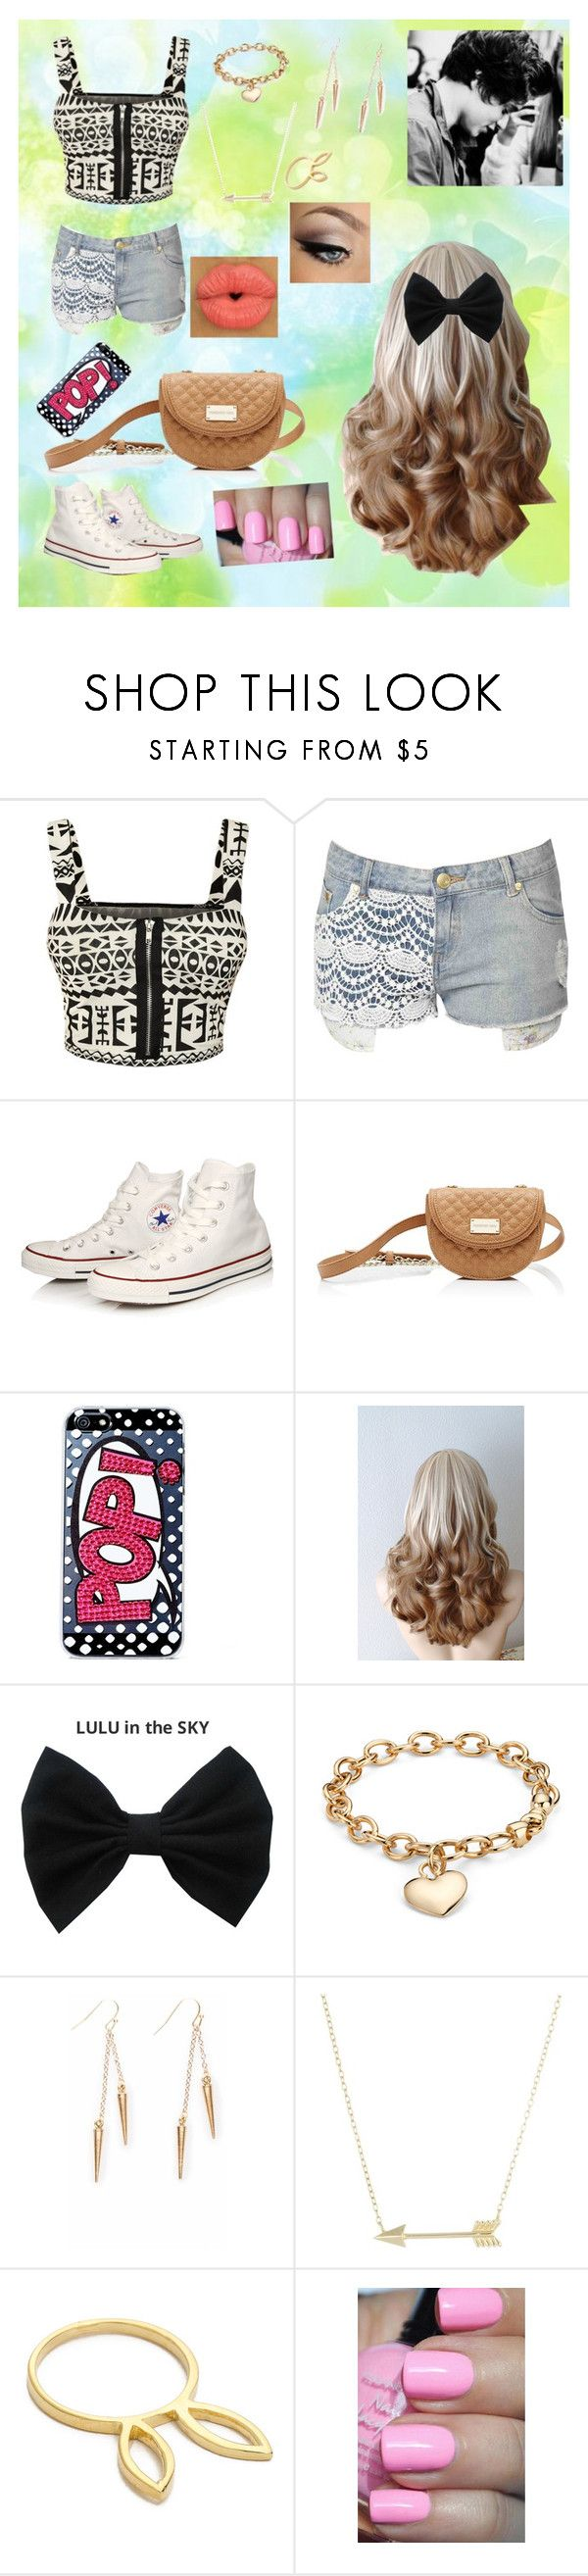 """""""Bradley Will Simpson"""" by marine081698 ❤ liked on Polyvore featuring WearAll, Jane Norman, Converse, Forever New, Skinnydip, Blue Nile, Amano Studio, Lord & Taylor and Jacquie Aiche"""